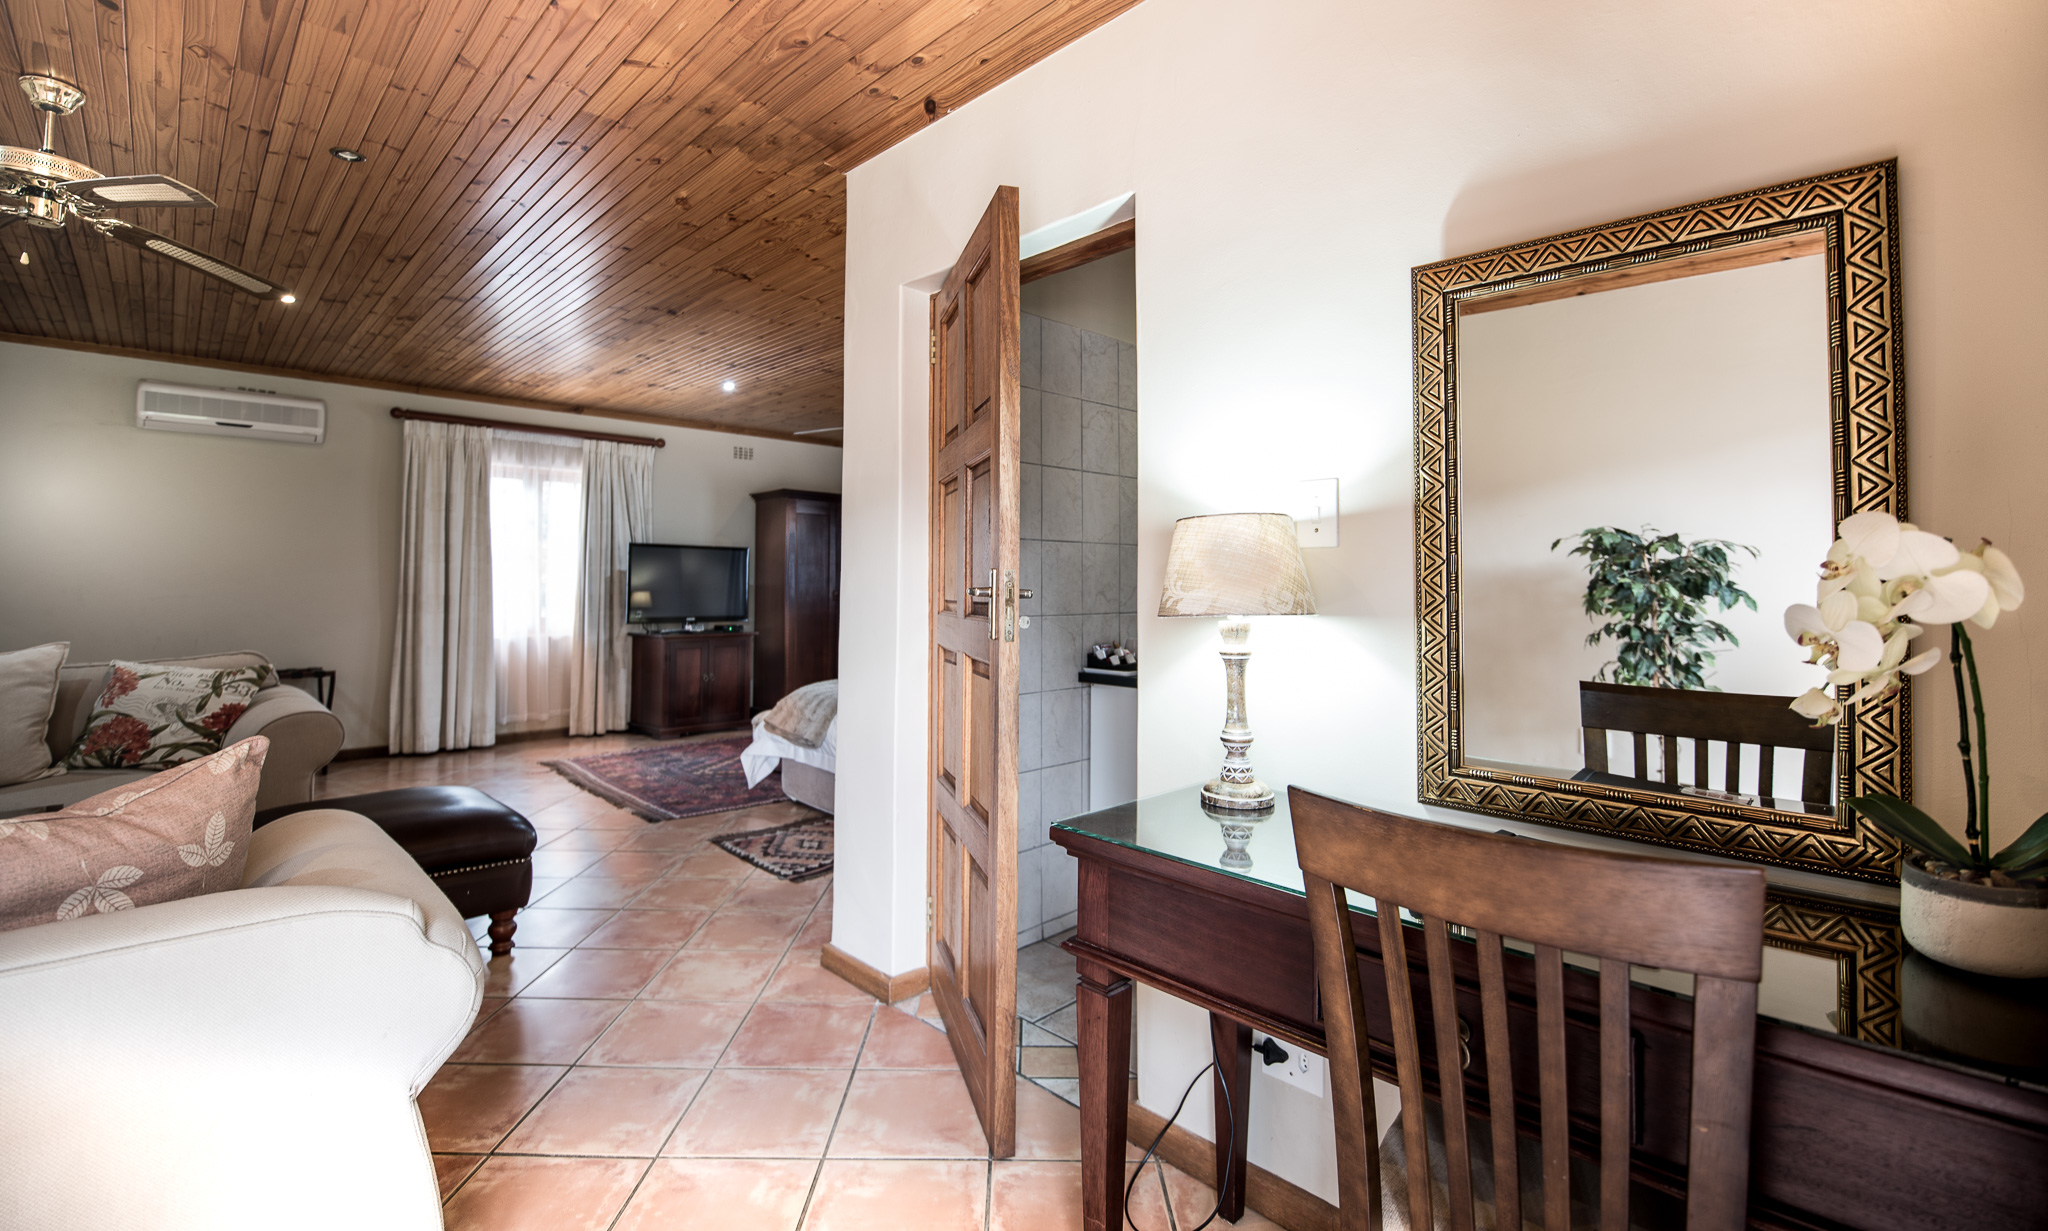 Oaktree Lodge Garden Suite Welcomes you to Paarl